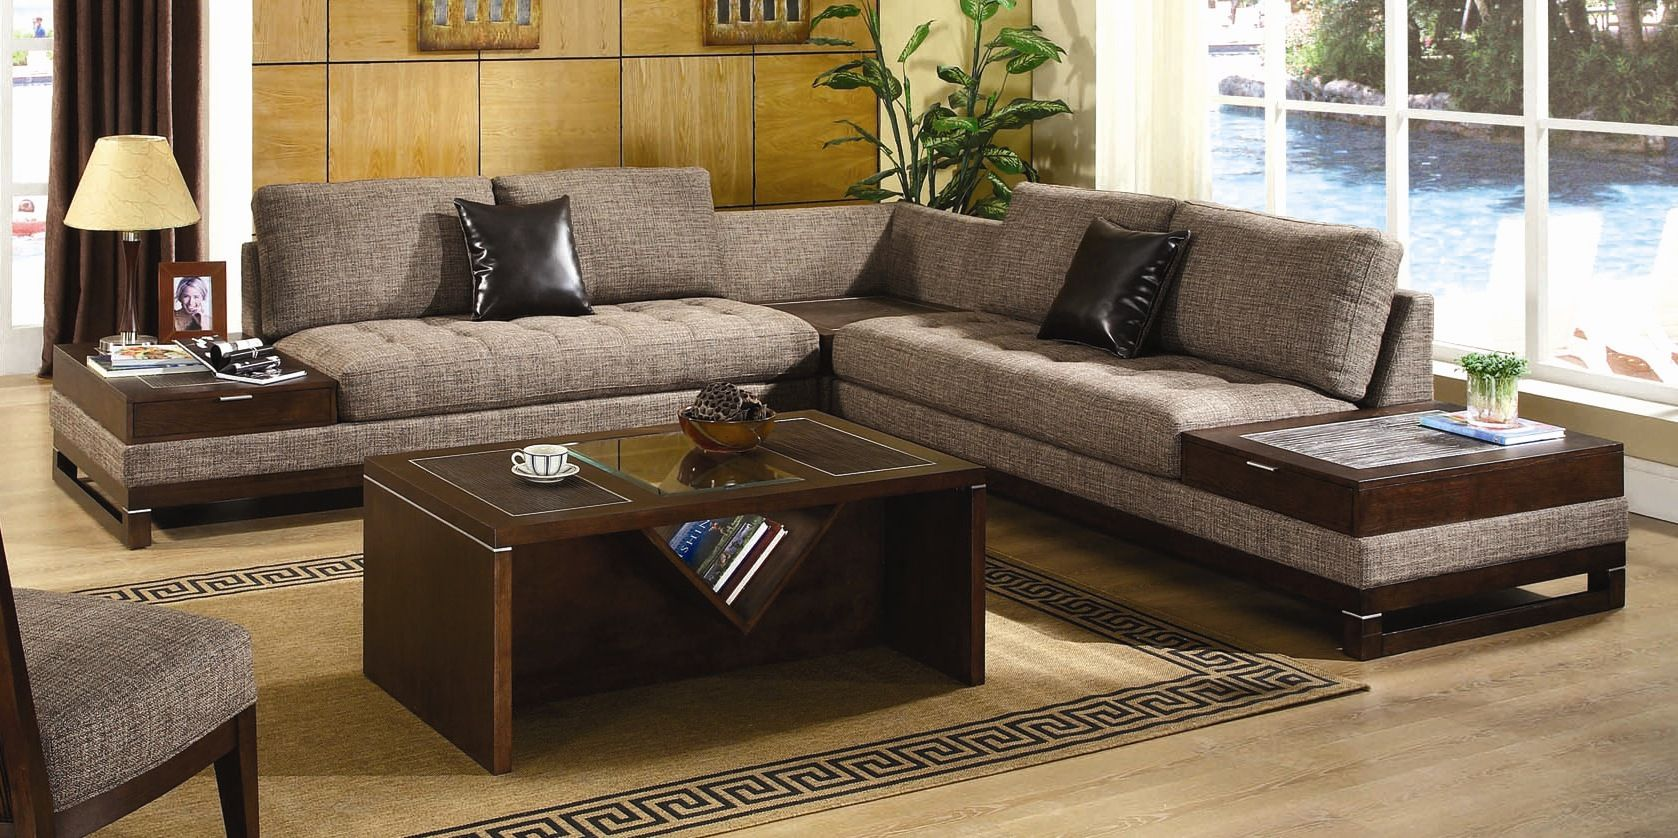 Cheap Living Room Furniture Online Buy Furniture Online Retro